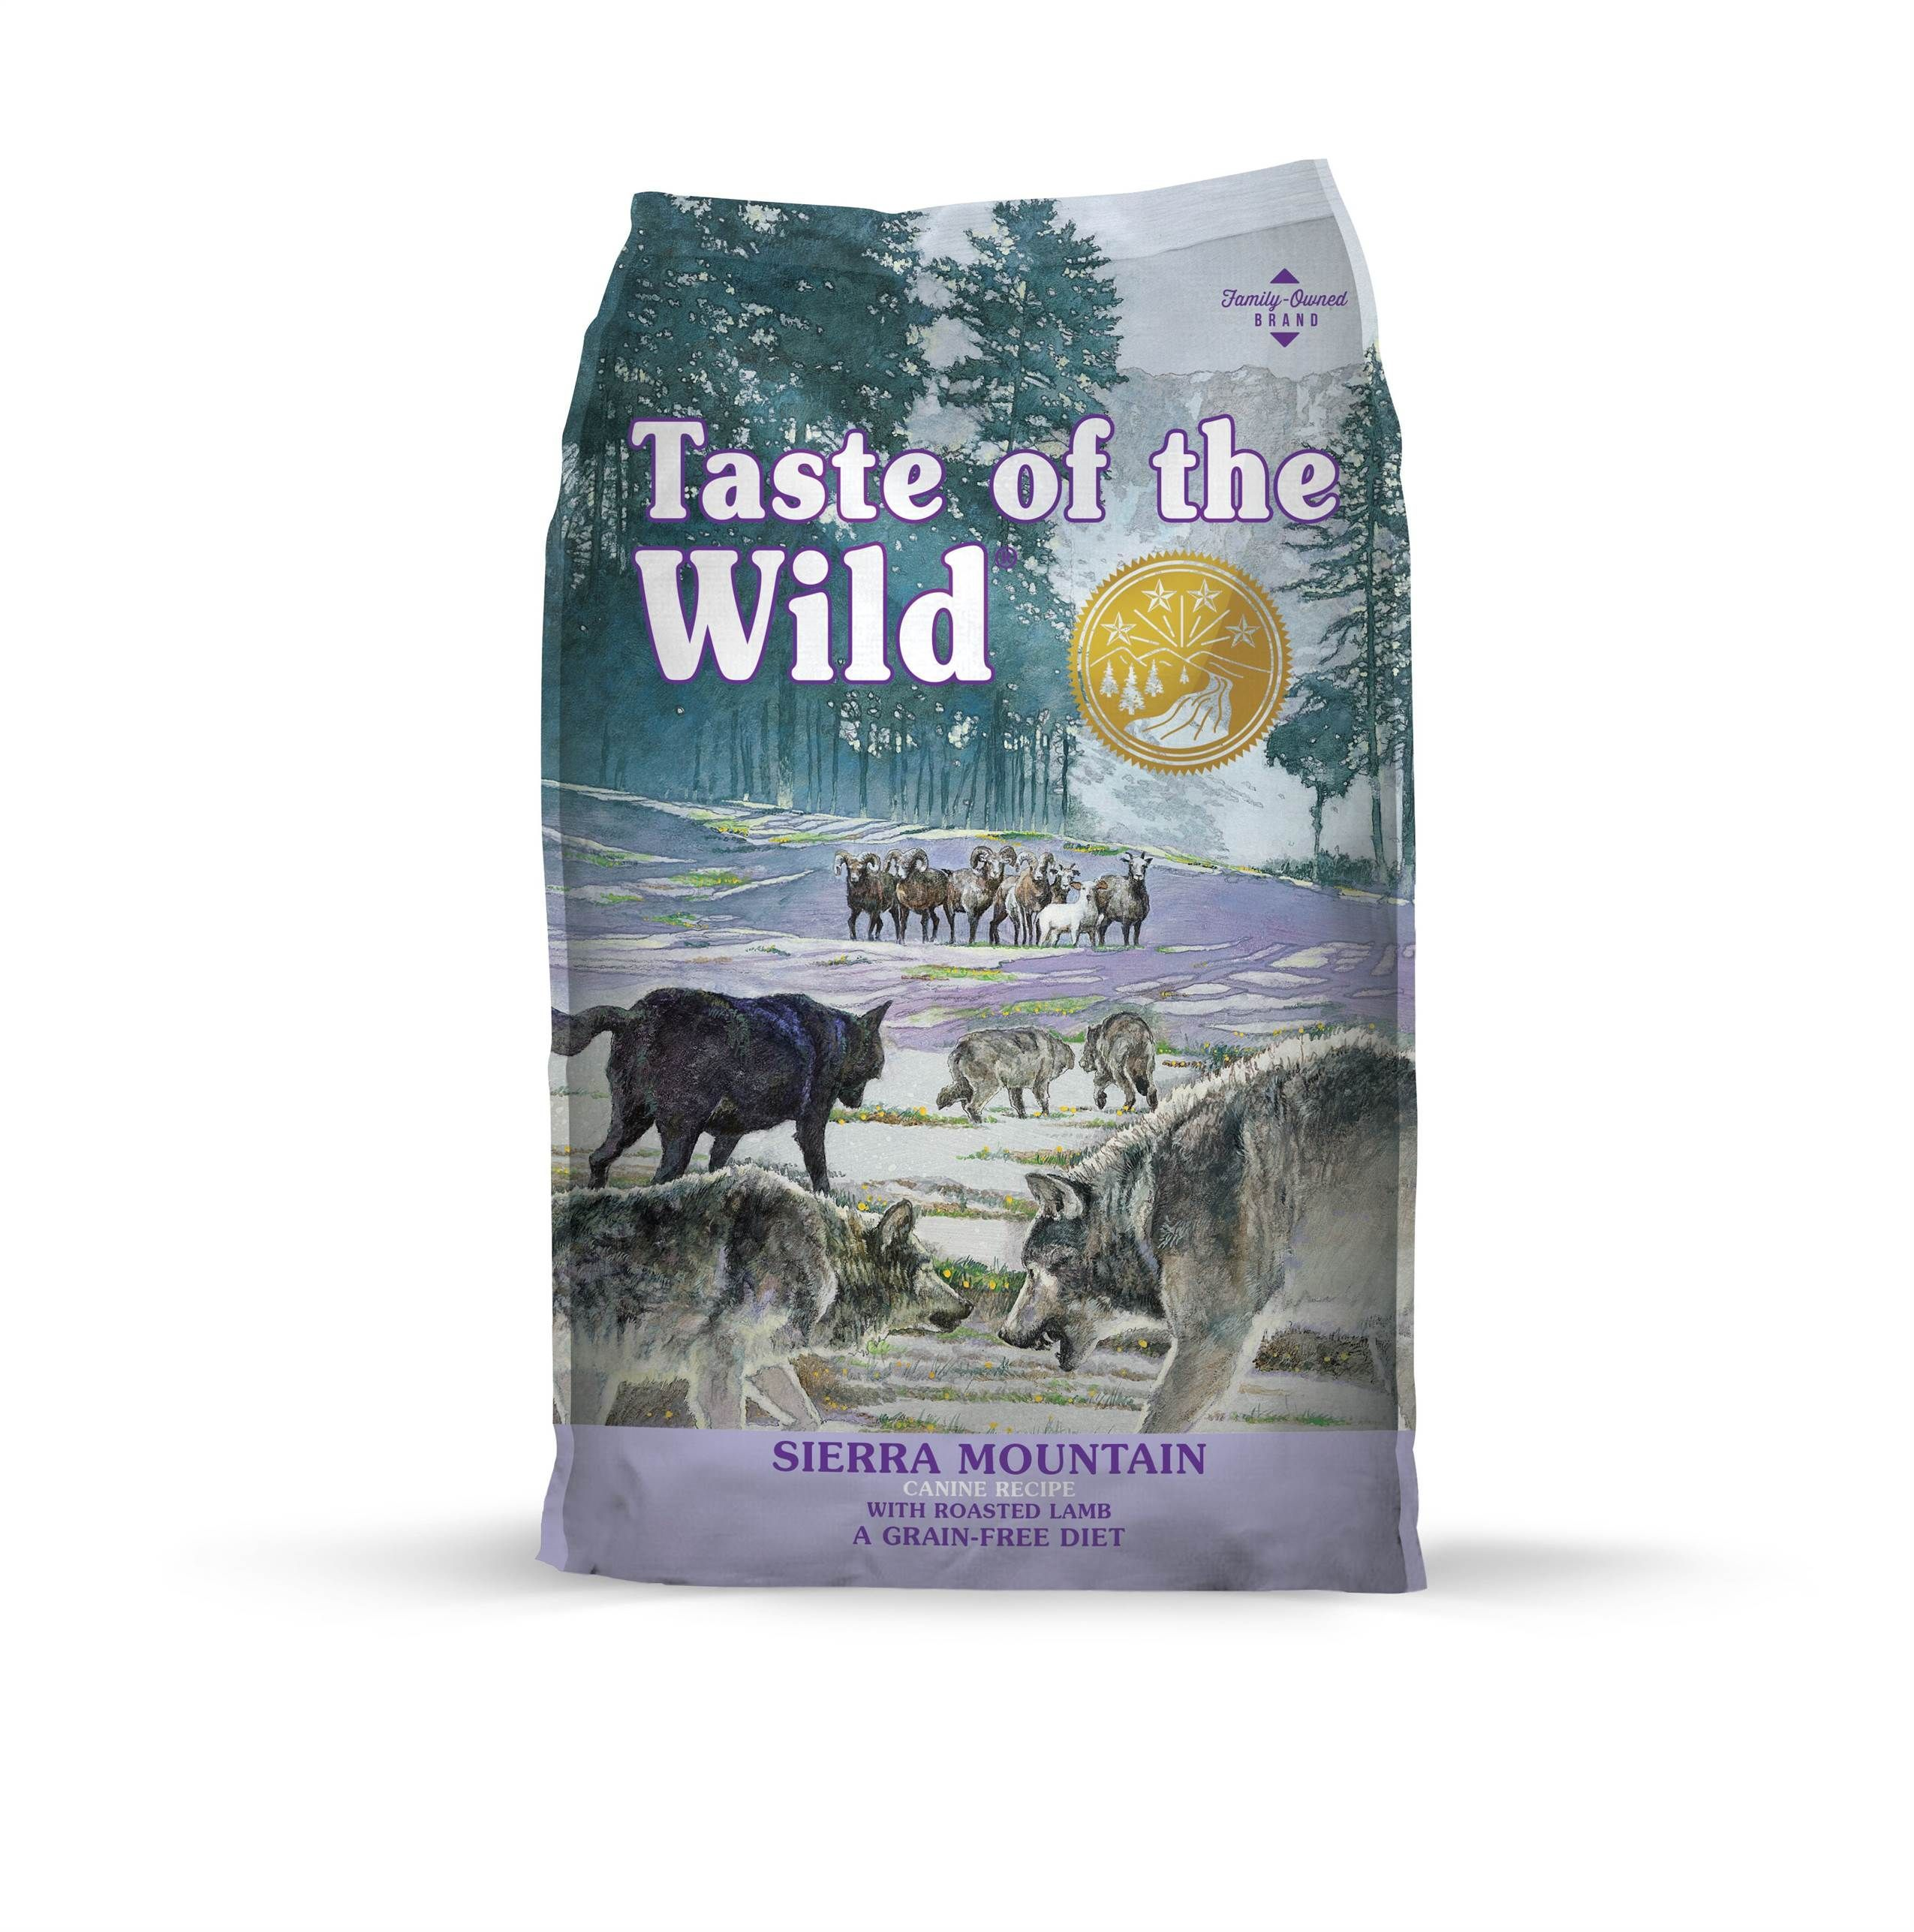 Taste of the Wild Sierra Mountain with Roasted Lamb Formula Dry Dog Food 5lbs-30lbs 00016